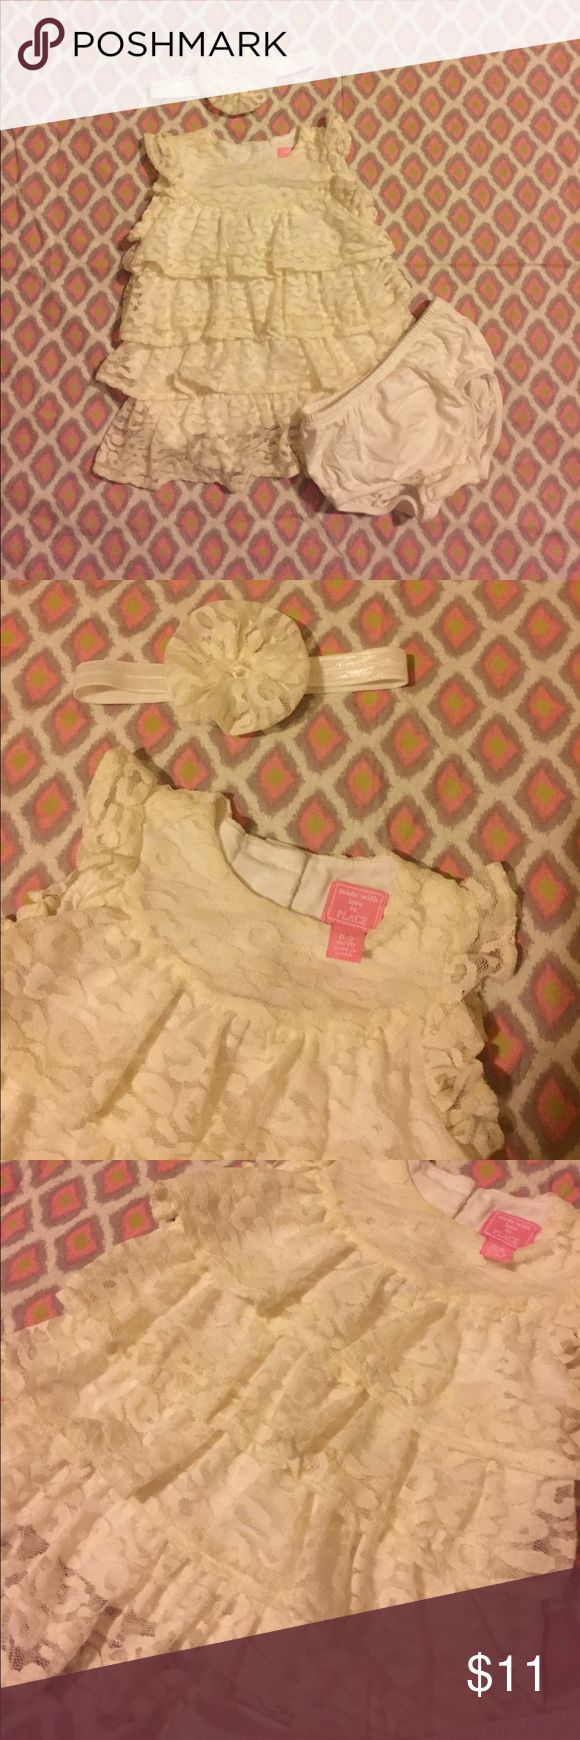 🎀 Children's Place Cream Leopard Cheetah Dress 🎀 Children's Place Cream Leopard Cheetah Print Dress with diaper cover and matching headband.  EUC.  Worn only a few times, no stains or damage. The Children's Place Dresses Casual